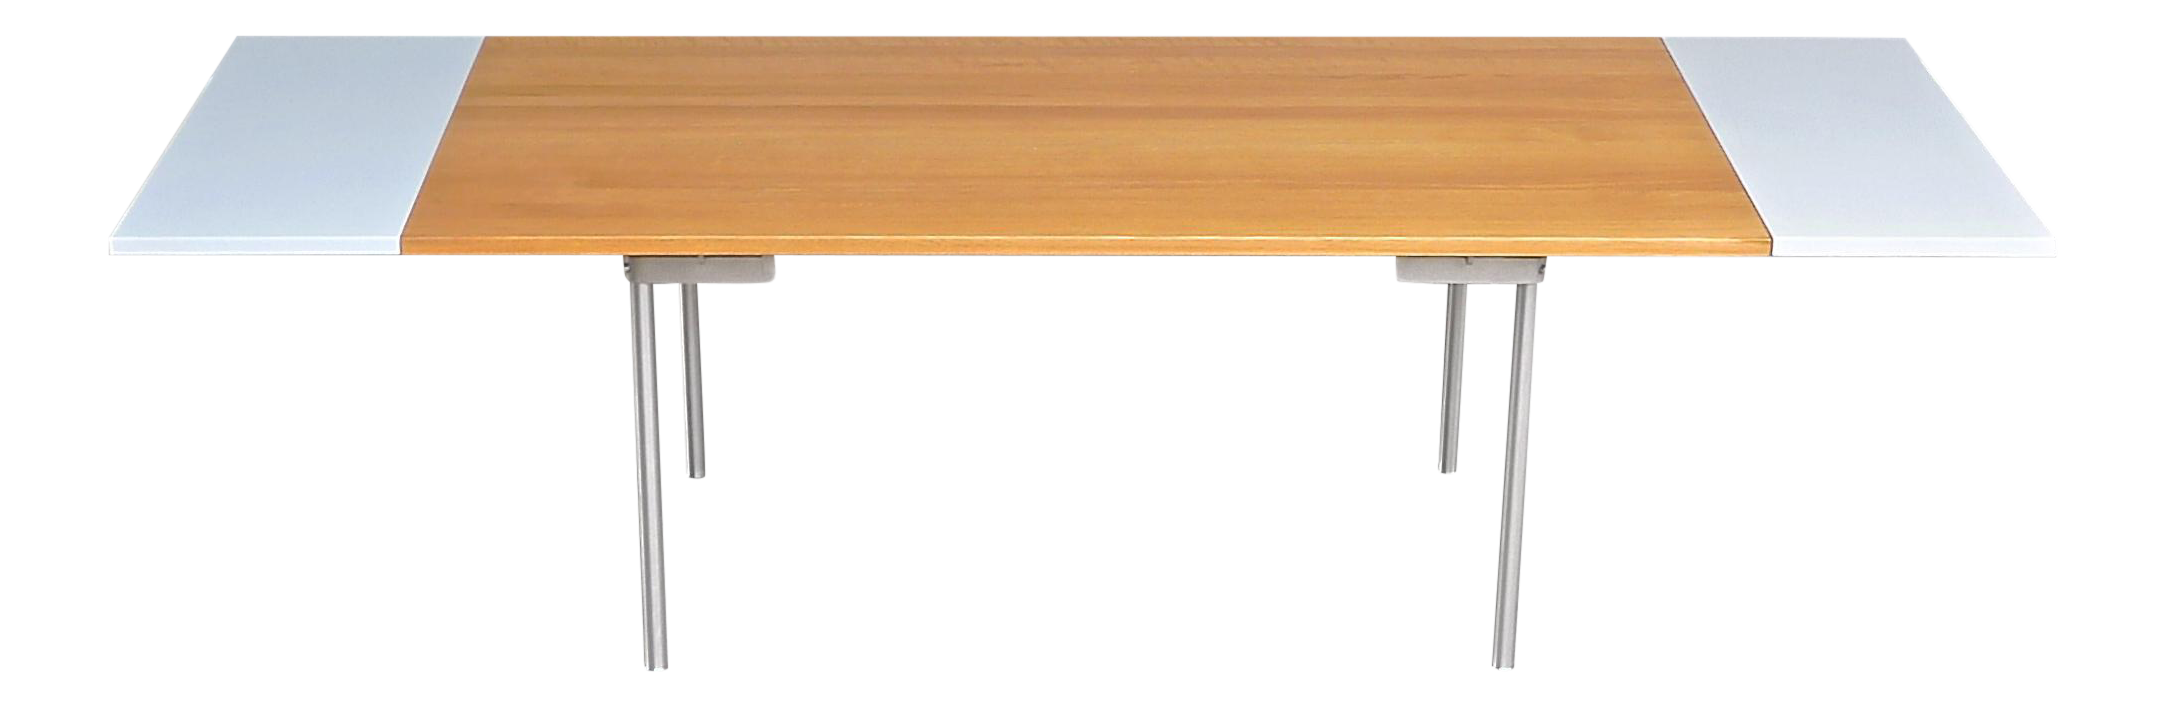 Exquisite Wegner CH318 Danish Modern Dining Table or Work Table